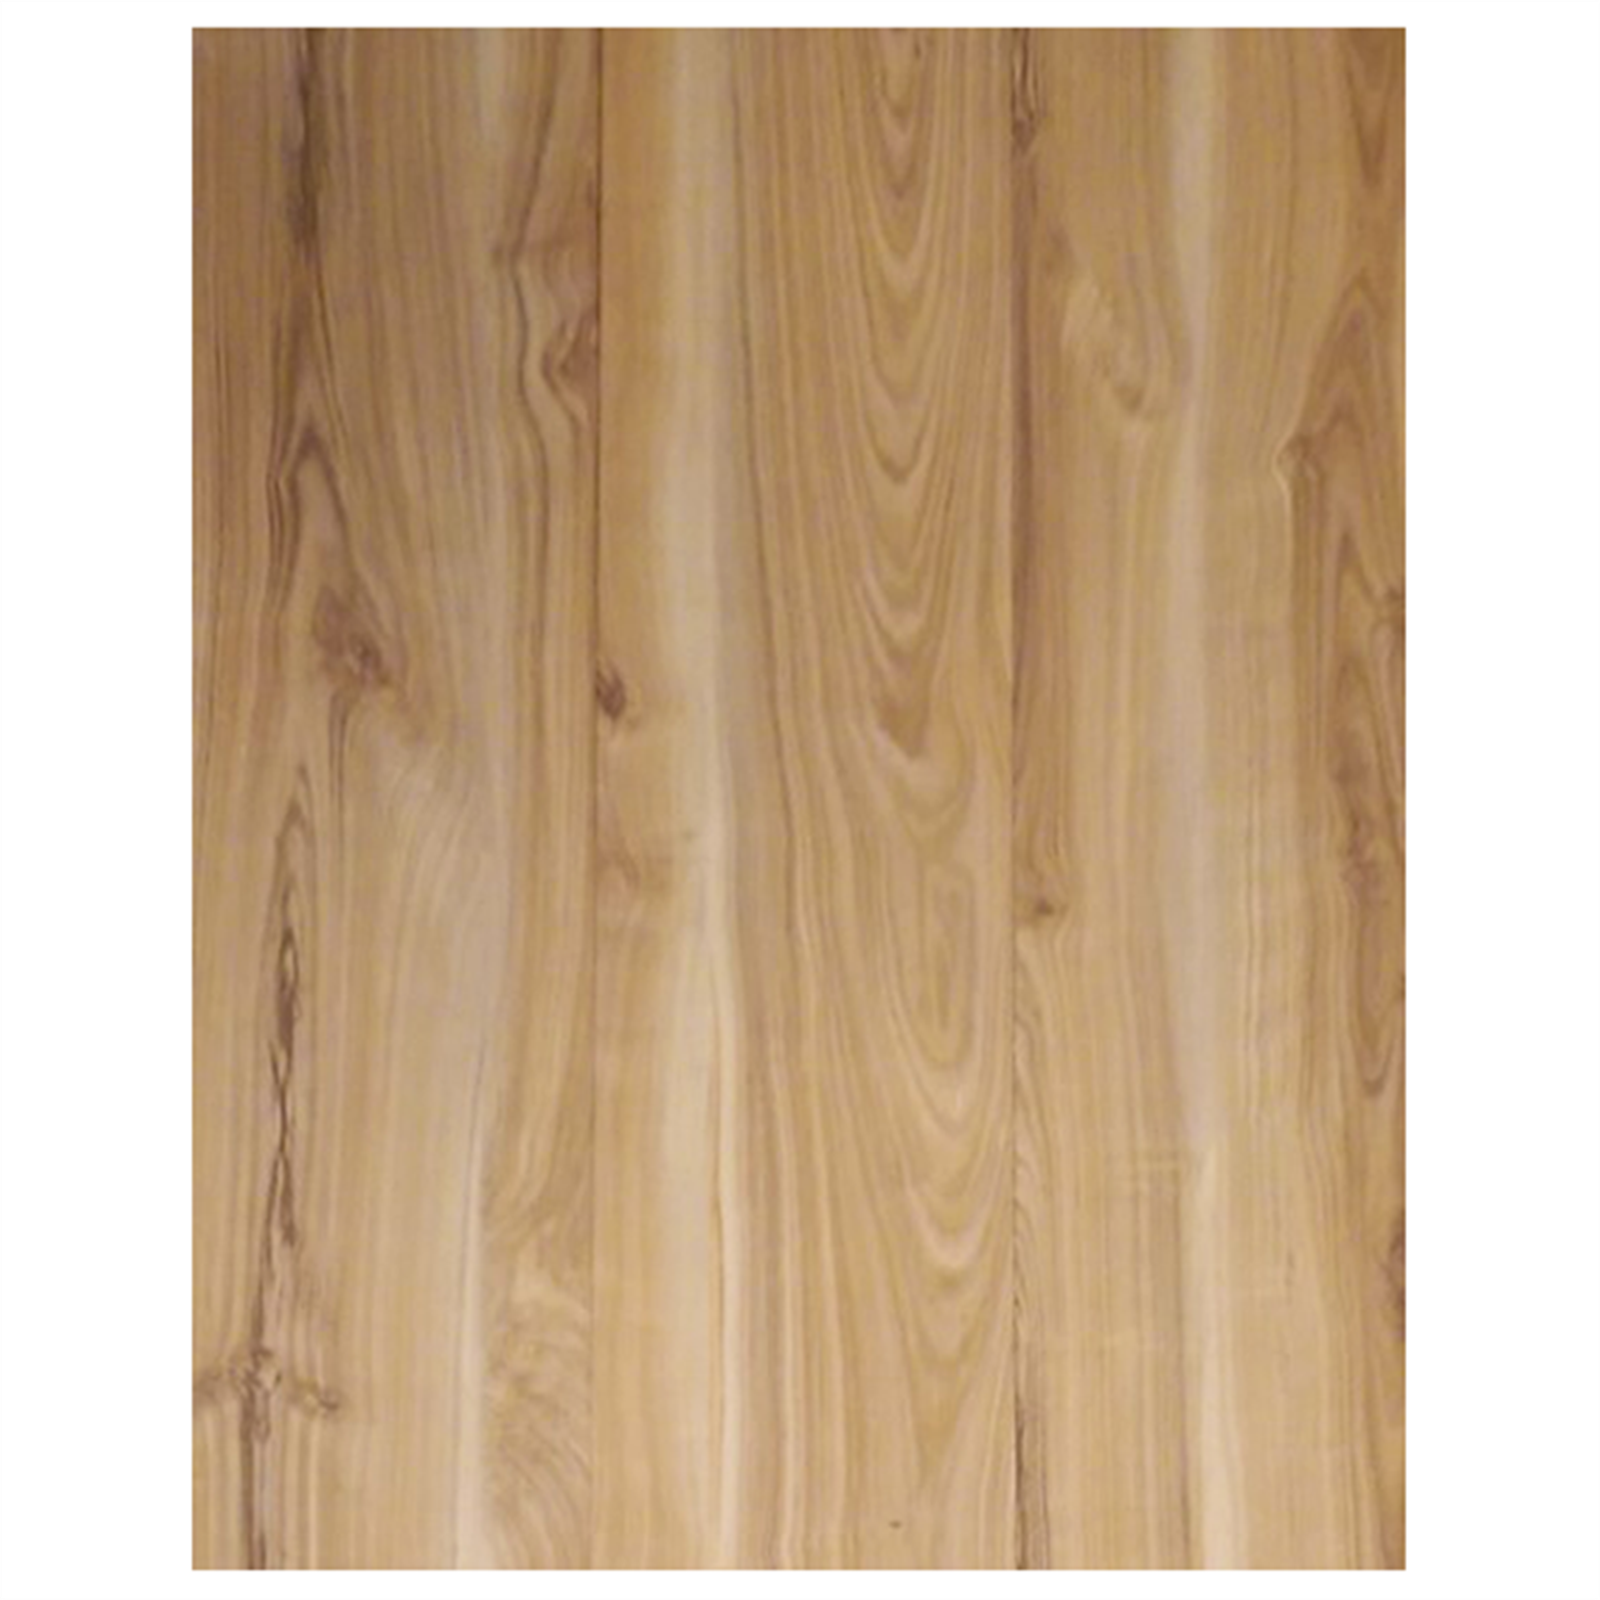 Pin Boards Bunnings Hanwood Laminate Flooring 7mm Honey Oak Bunnings Warehouse